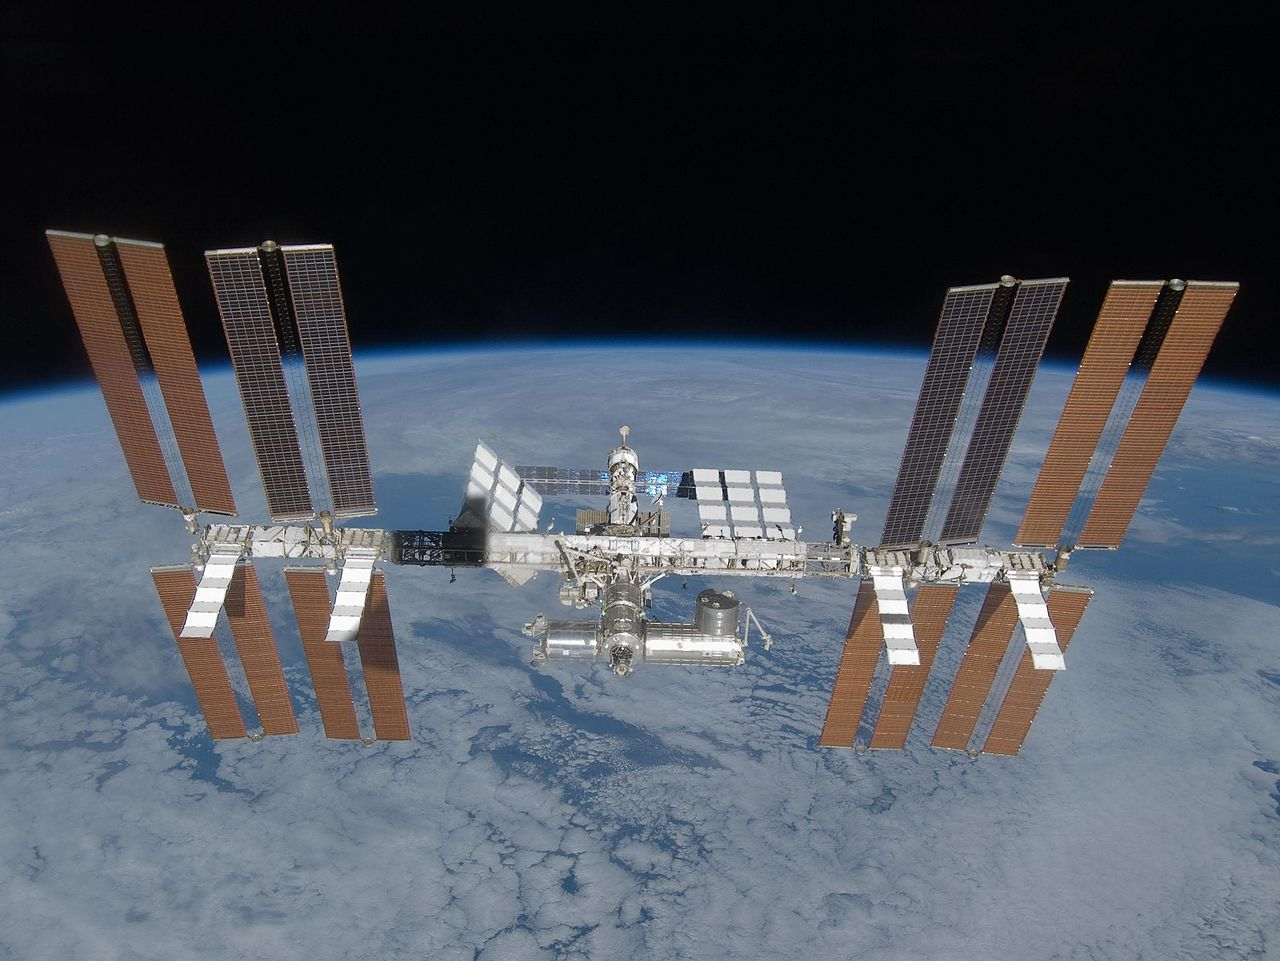 CPI Thermal Switches – Keeping Astronauts Safe on the ISS